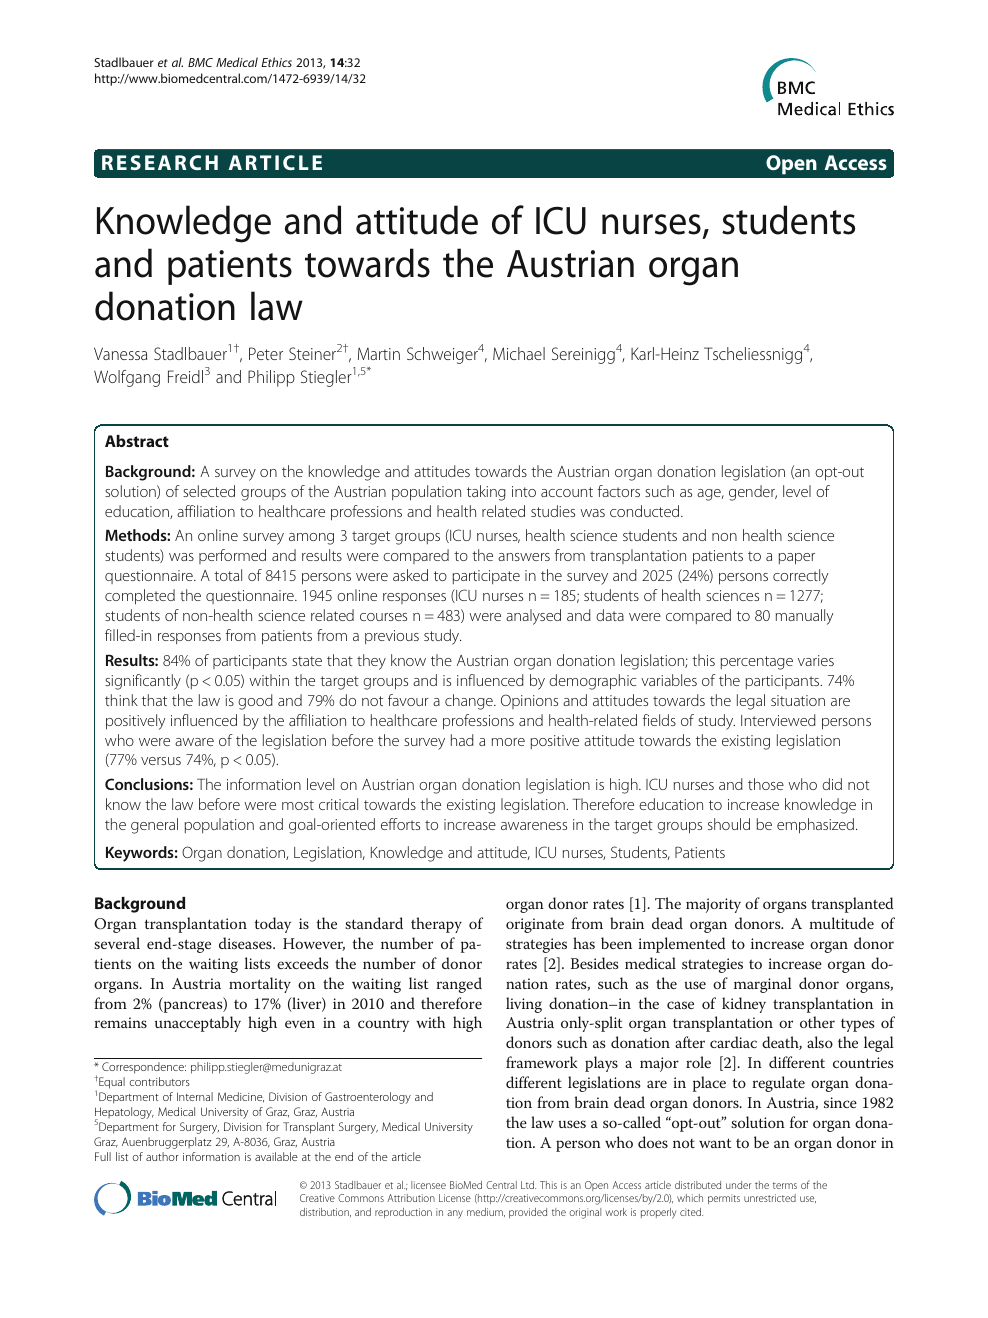 Knowledge and attitude of ICU nurses, students and patients